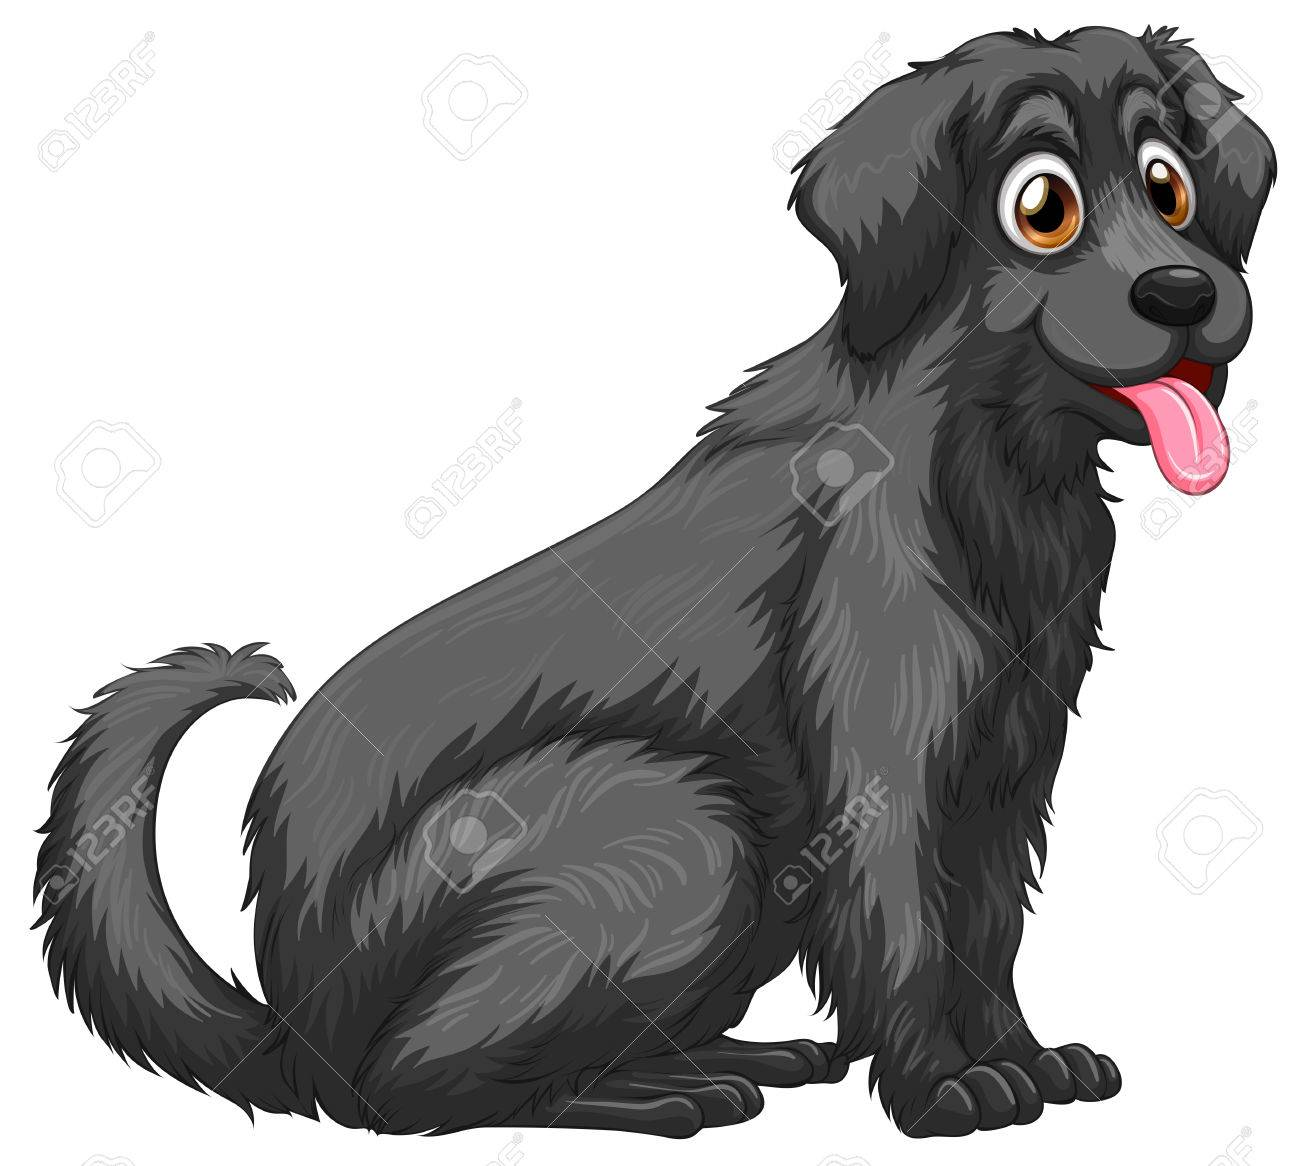 illustration of a close up black dog royalty free cliparts vectors rh 123rf com black white dog clipart black dog bone clipart